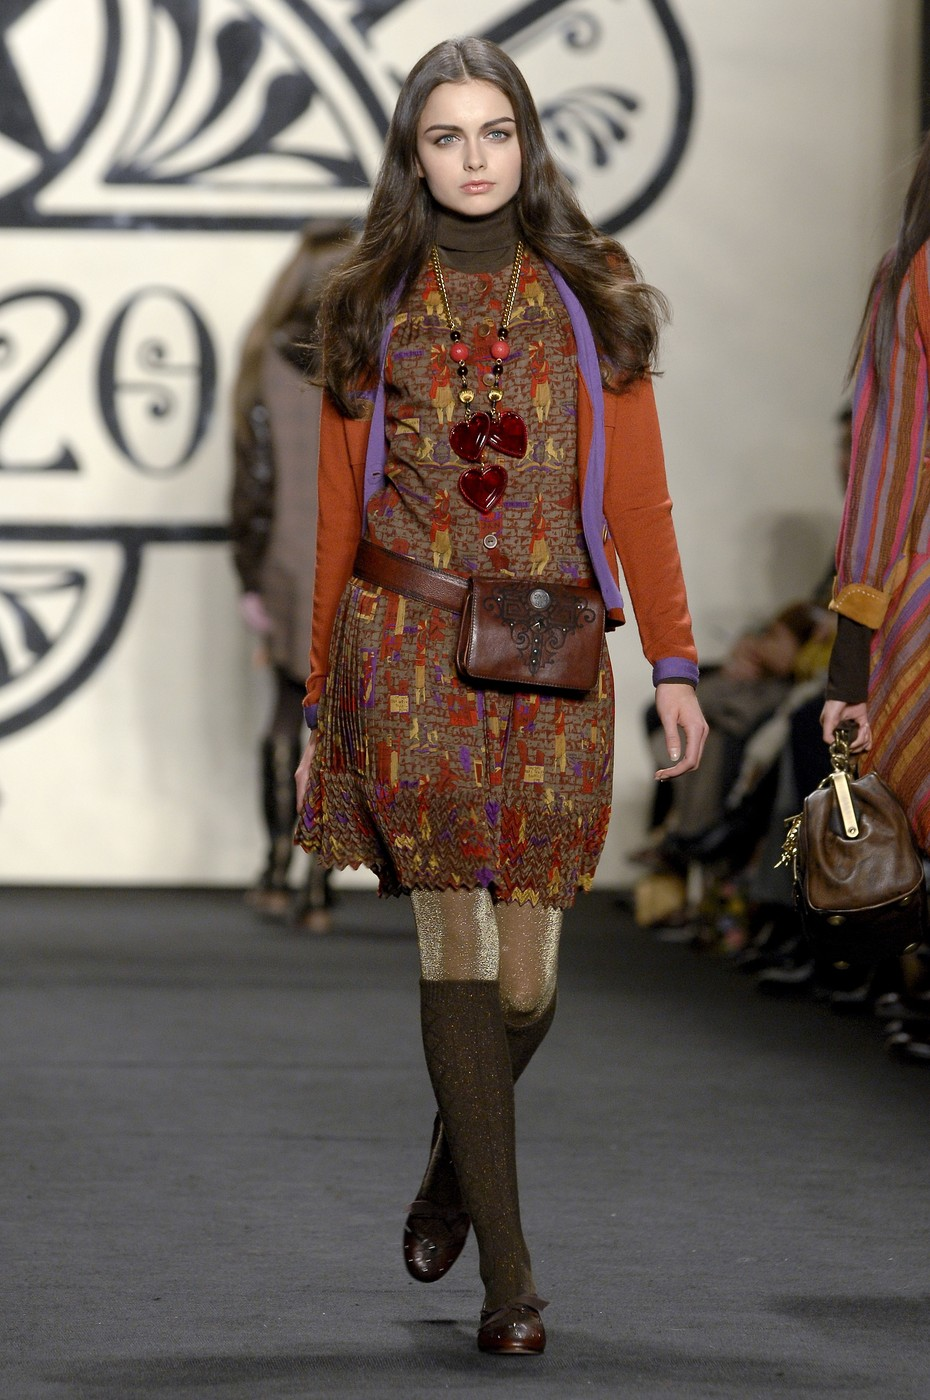 Anna Sui Fall 2018 Ready-to-Wear Collection - Vogue 92